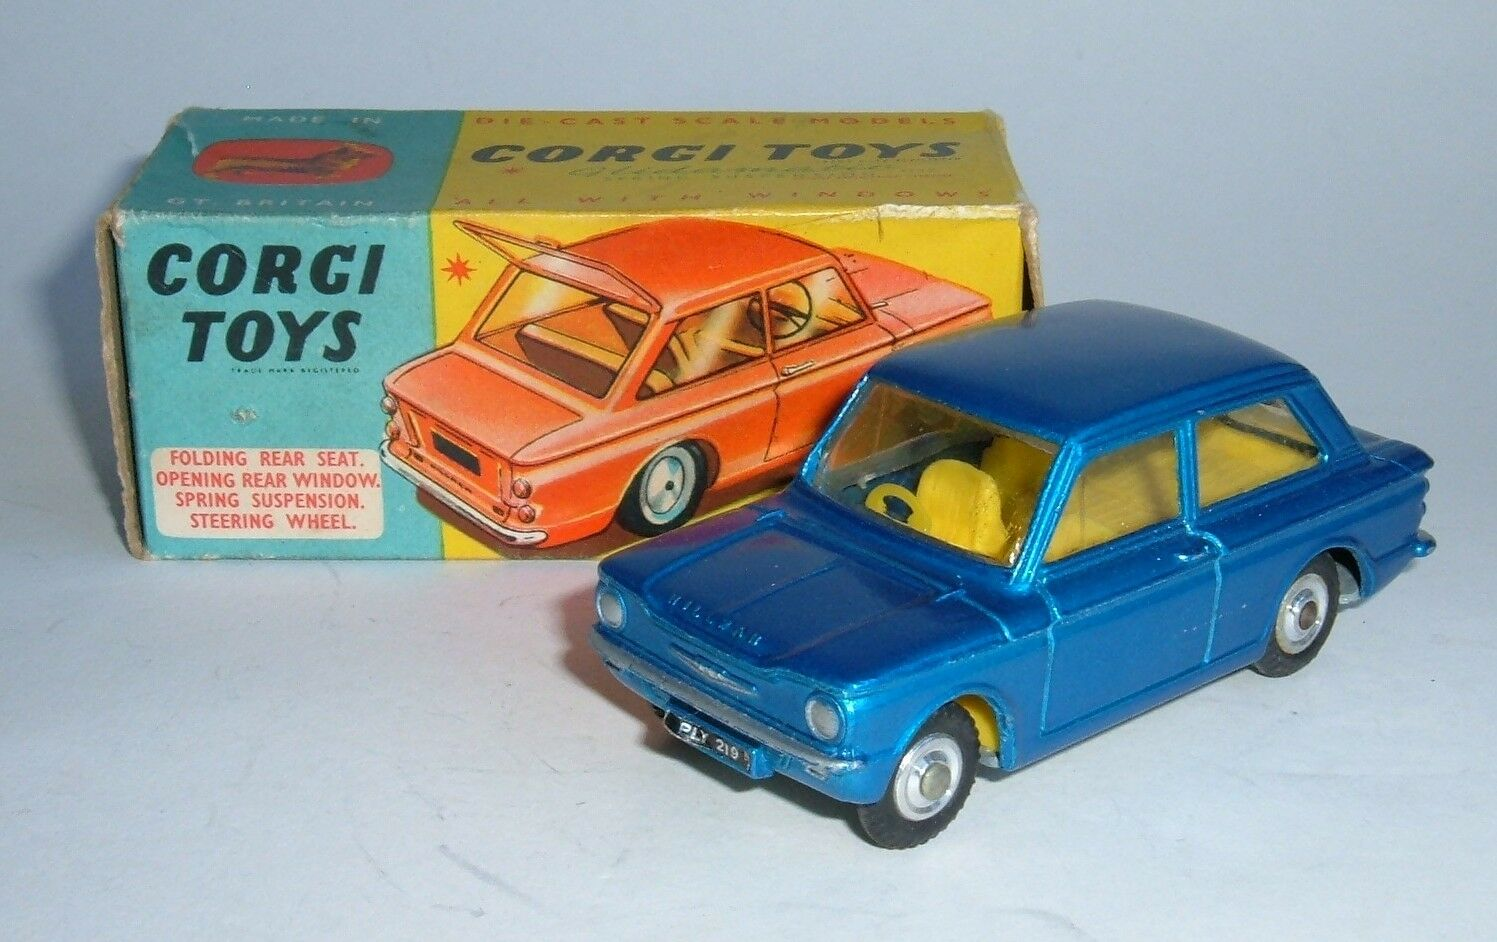 Corgi Spielzeugs No. 251, Hillman Imp, - Superb Near Mint